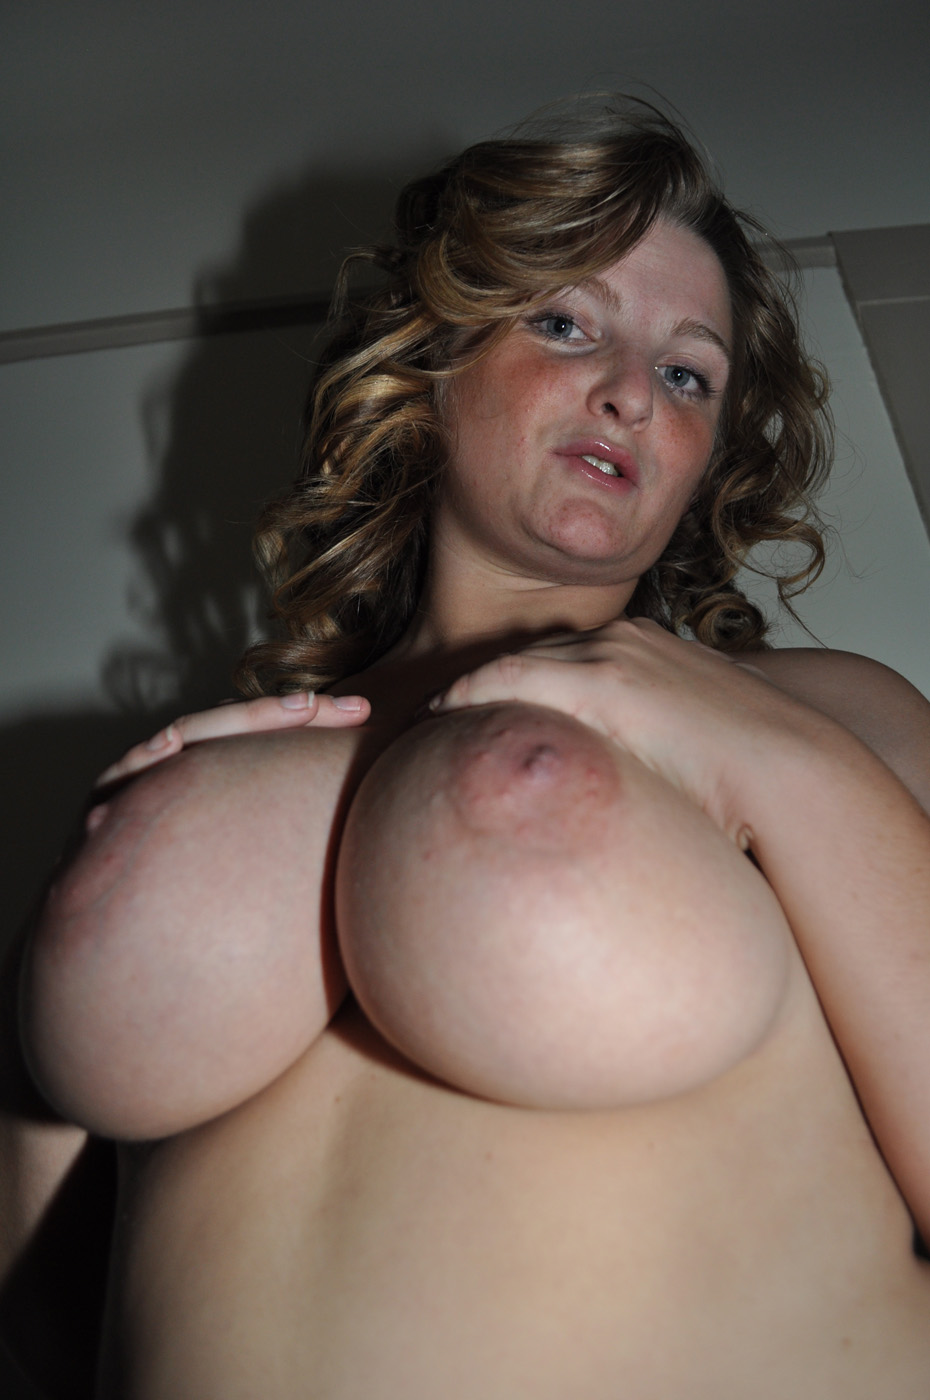 tits amateur Best mature